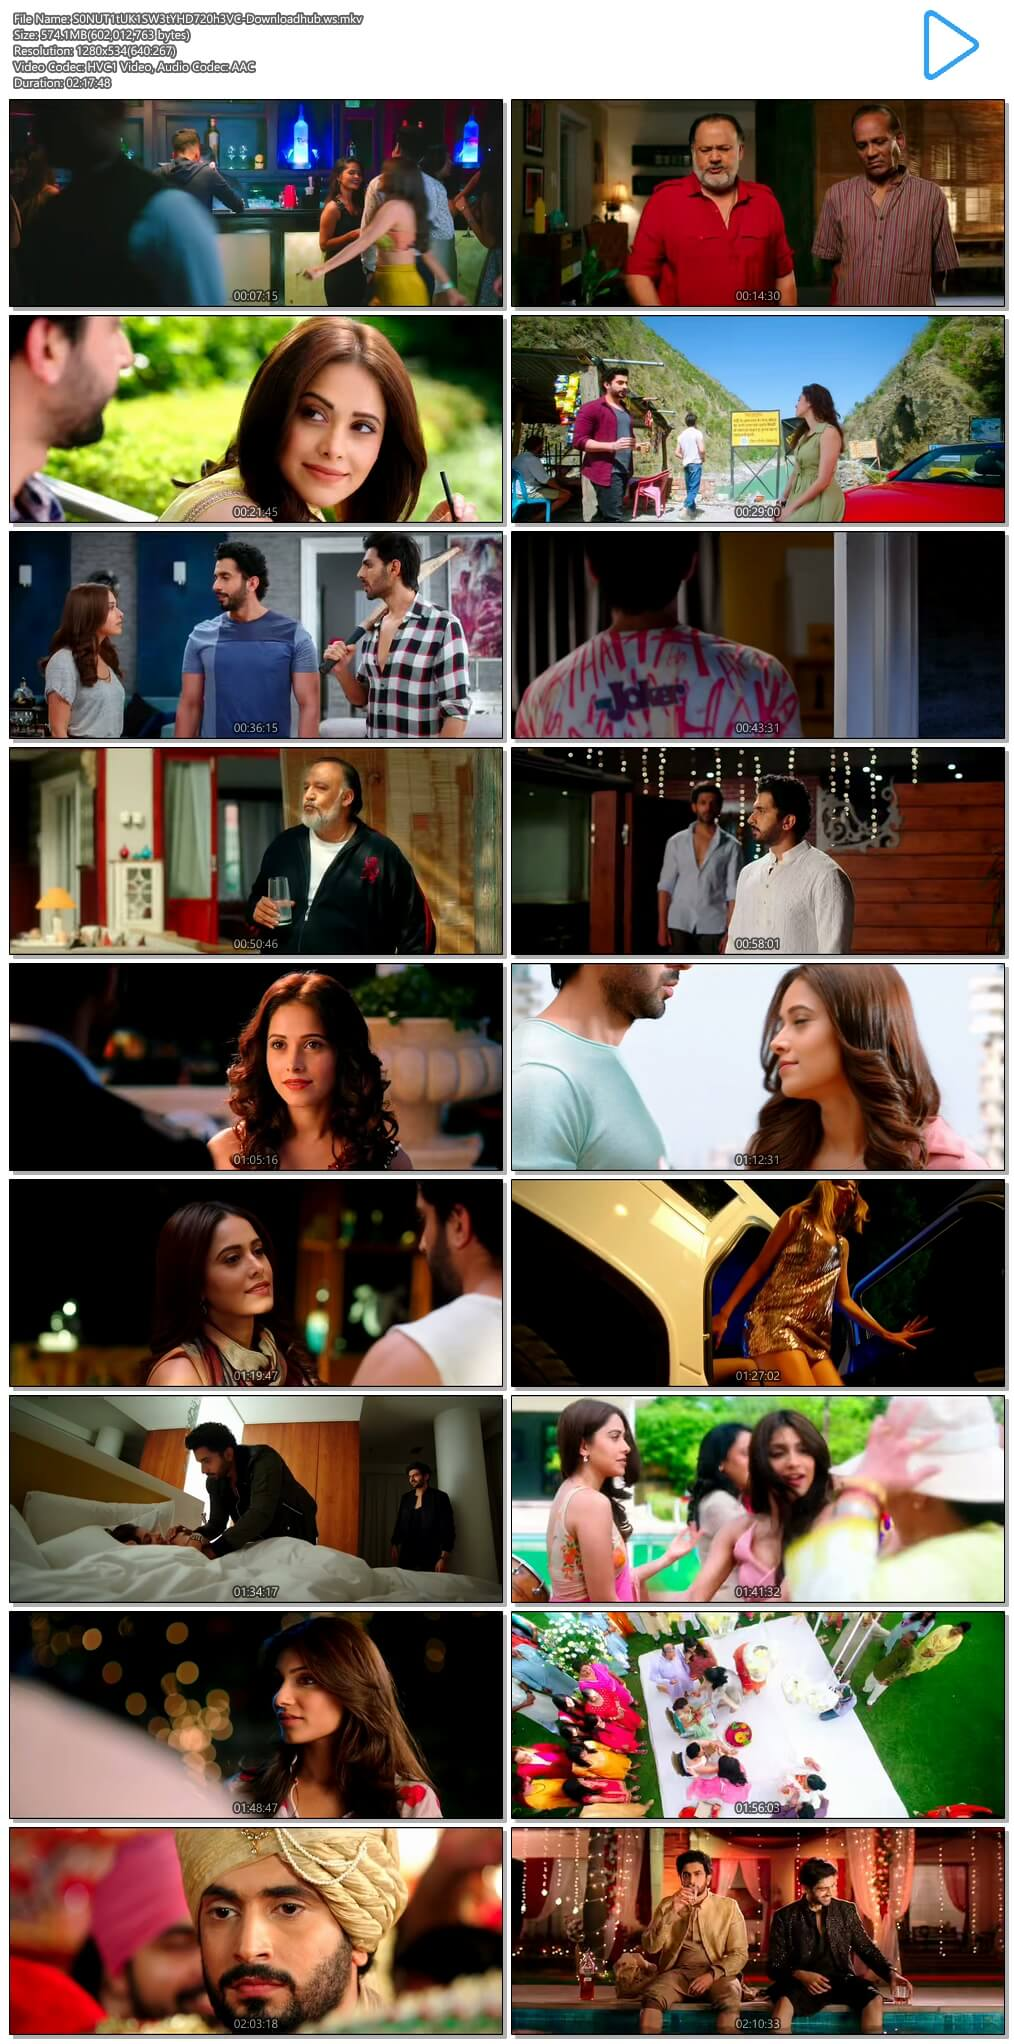 Sonu Ke Titu Ki Sweety 2018 Hindi 720p HEVC HDRip ESubs